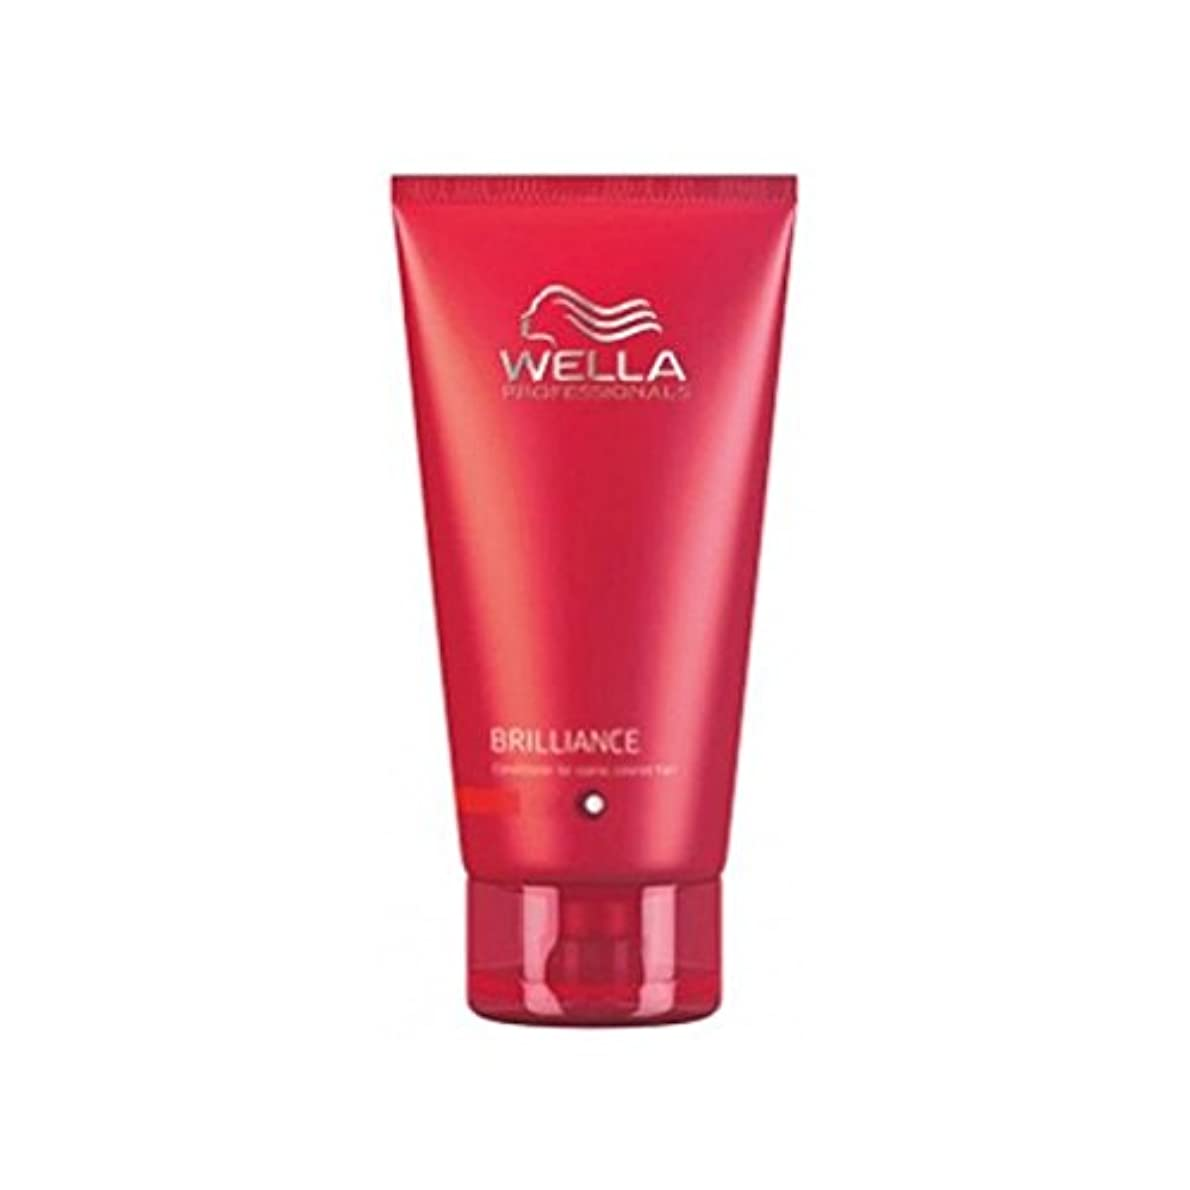 Wella Professionals Brilliance Conditioner For Fine To Normal, Coloured Hair (200ml) (Pack of 6) - ウェラの専門家が通常に...